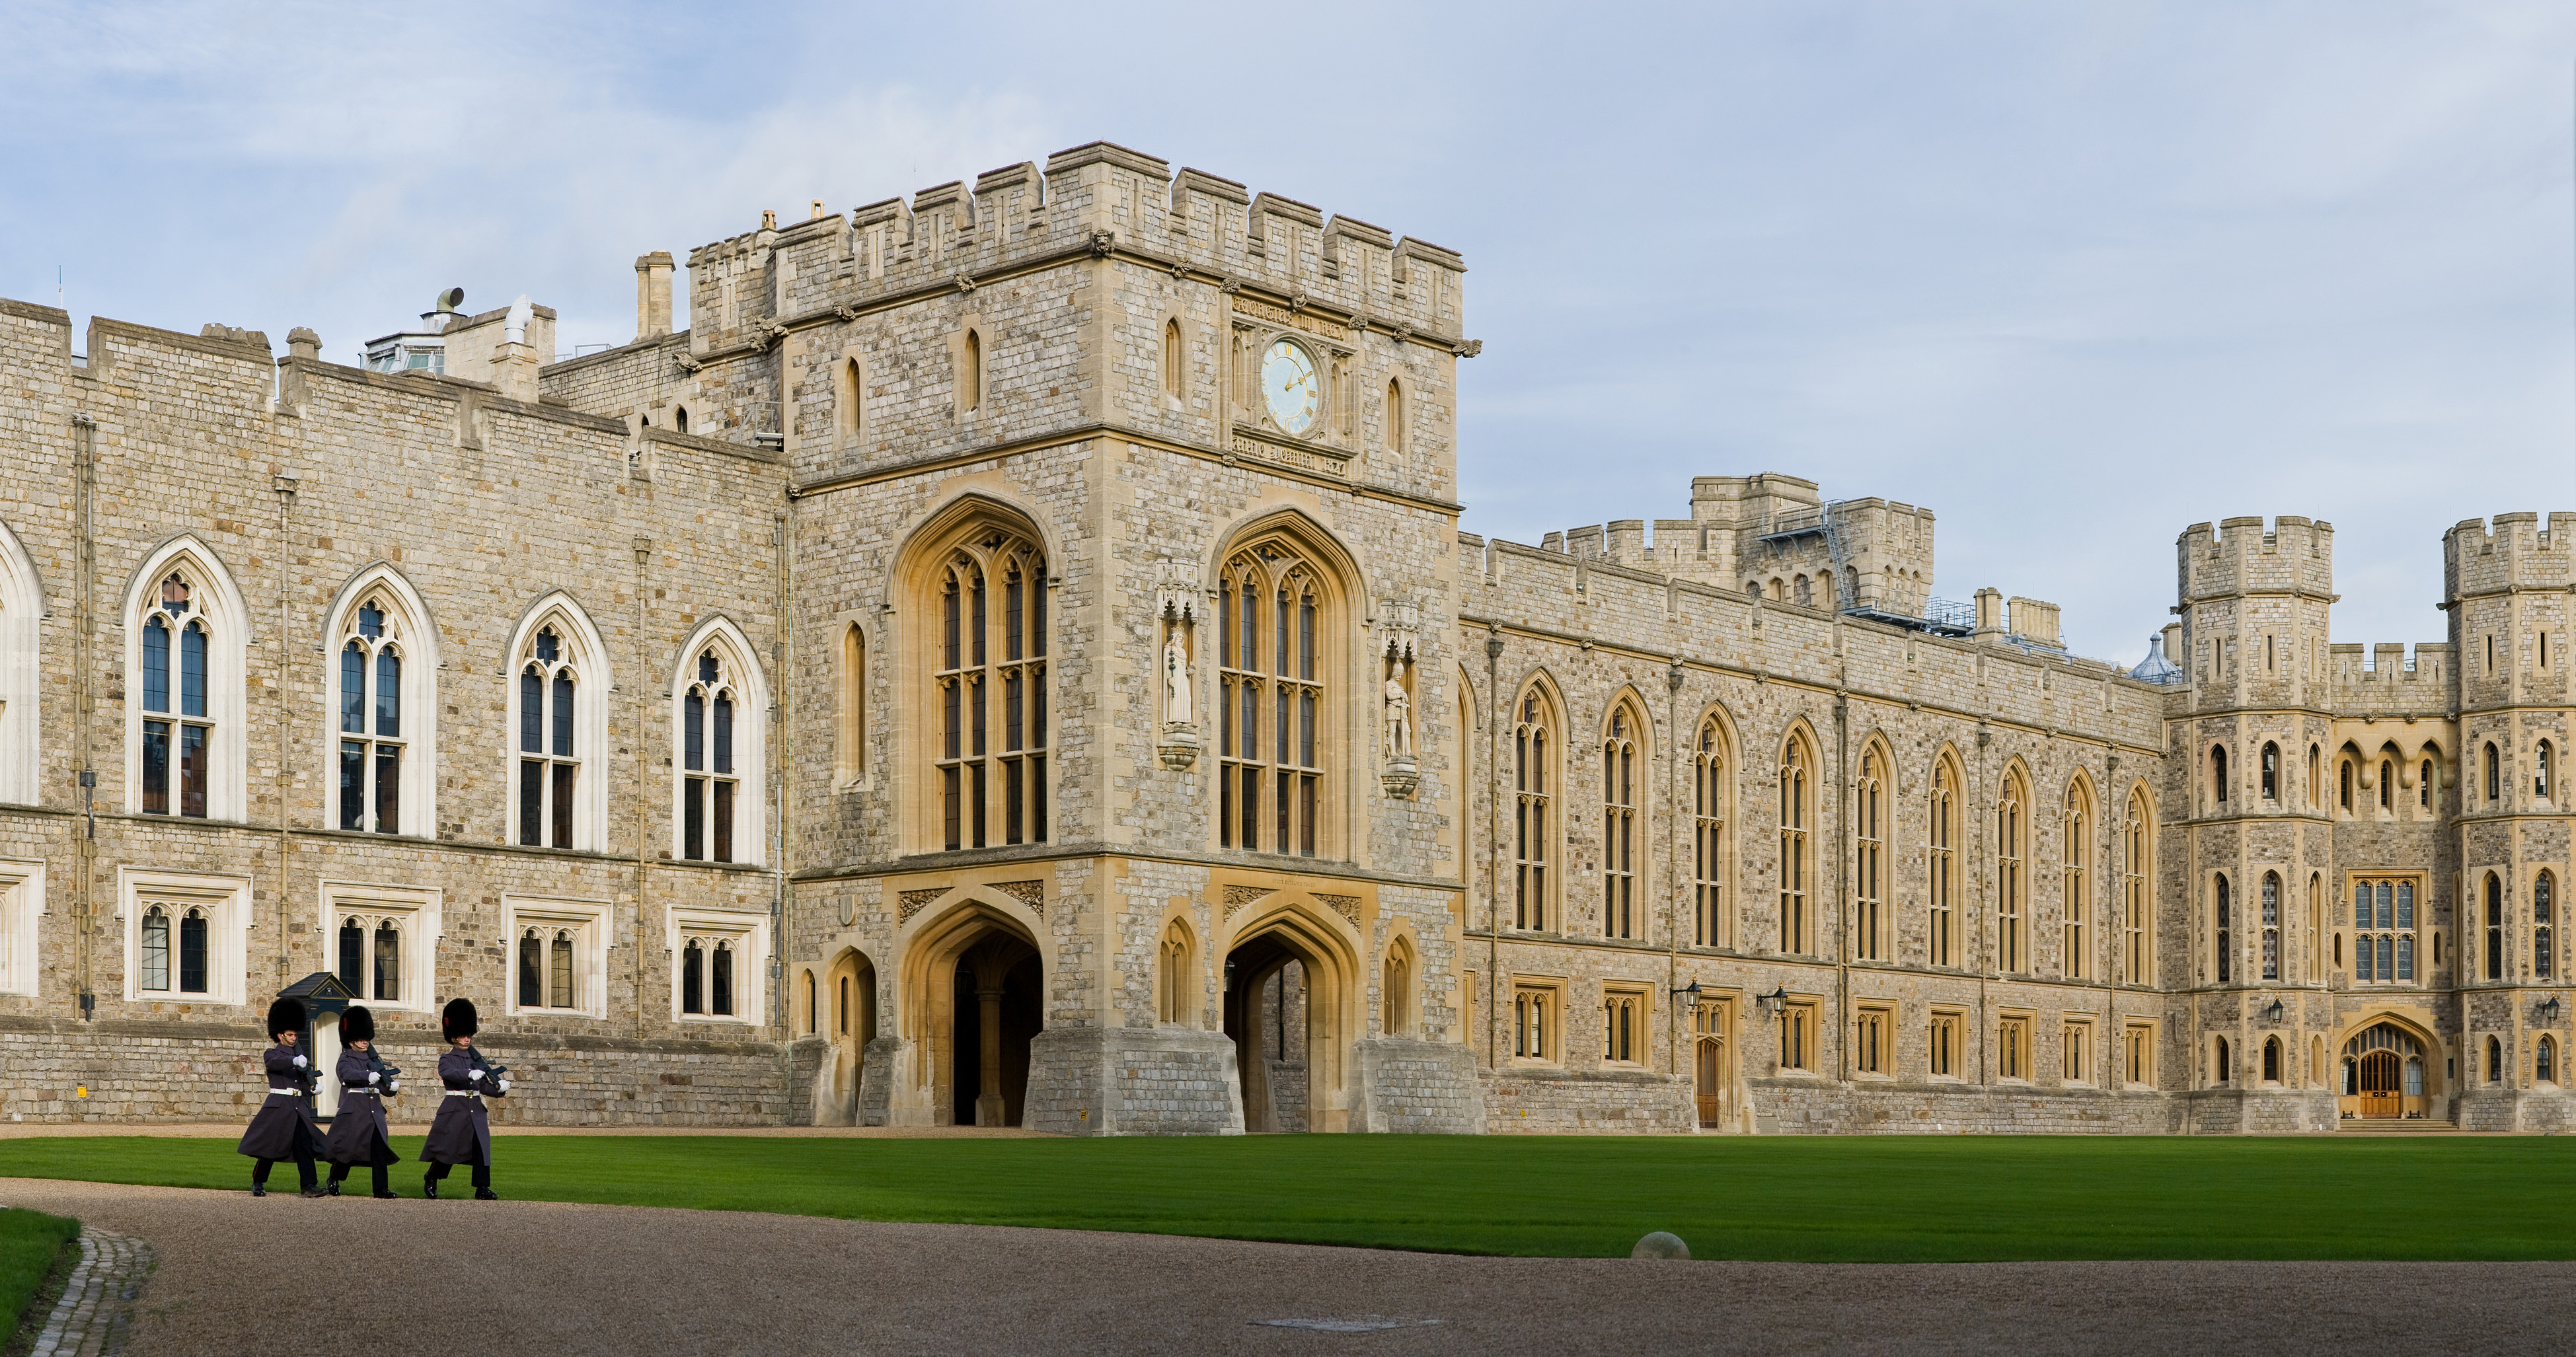 Windsor Castle - Wikipedia, the free encyclopedia